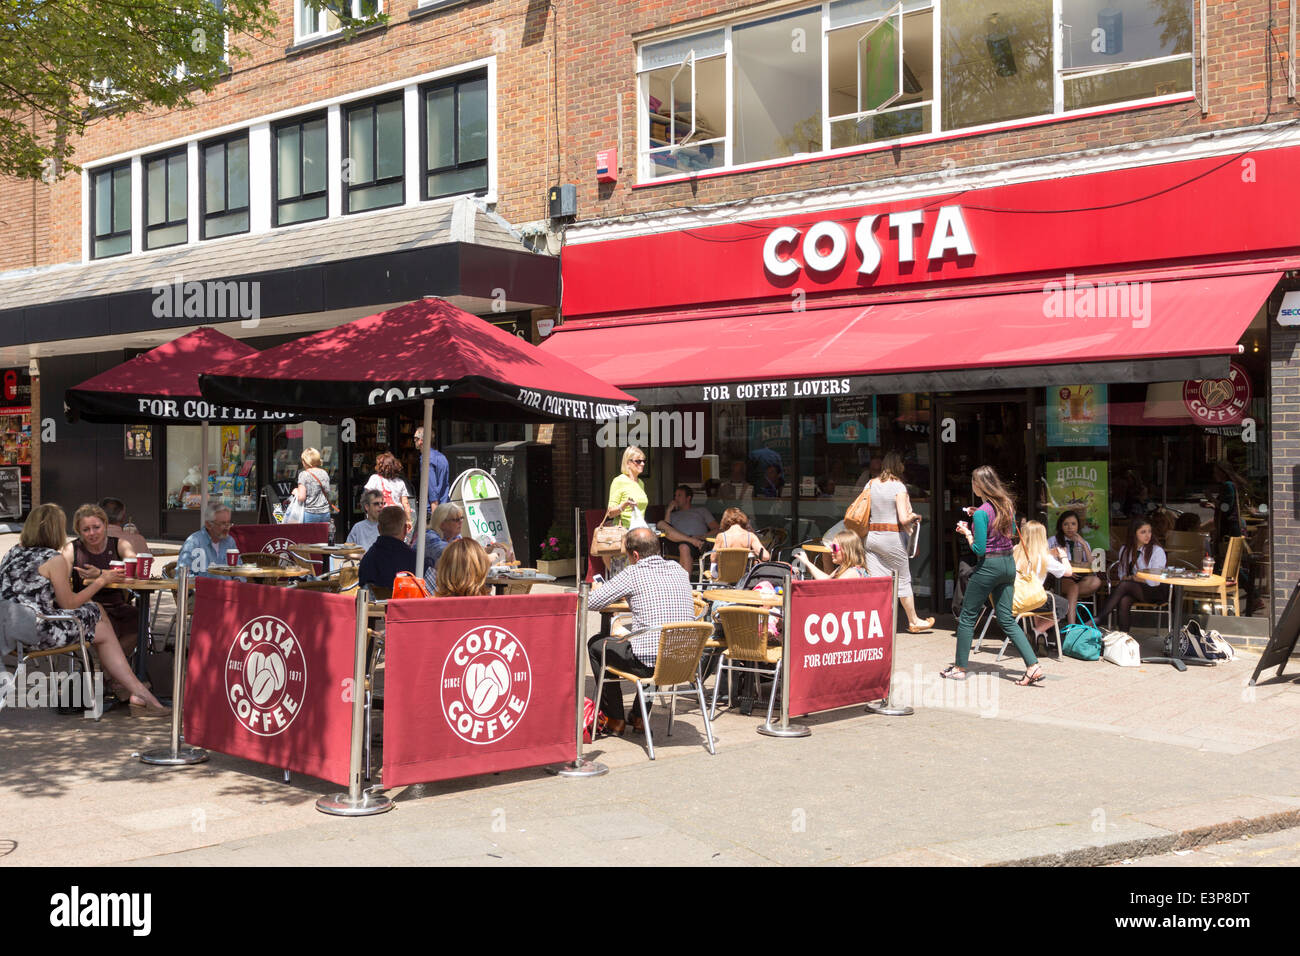 Costa Coffee - Berkhamsted High Street - Hertfordshire - Stock Image